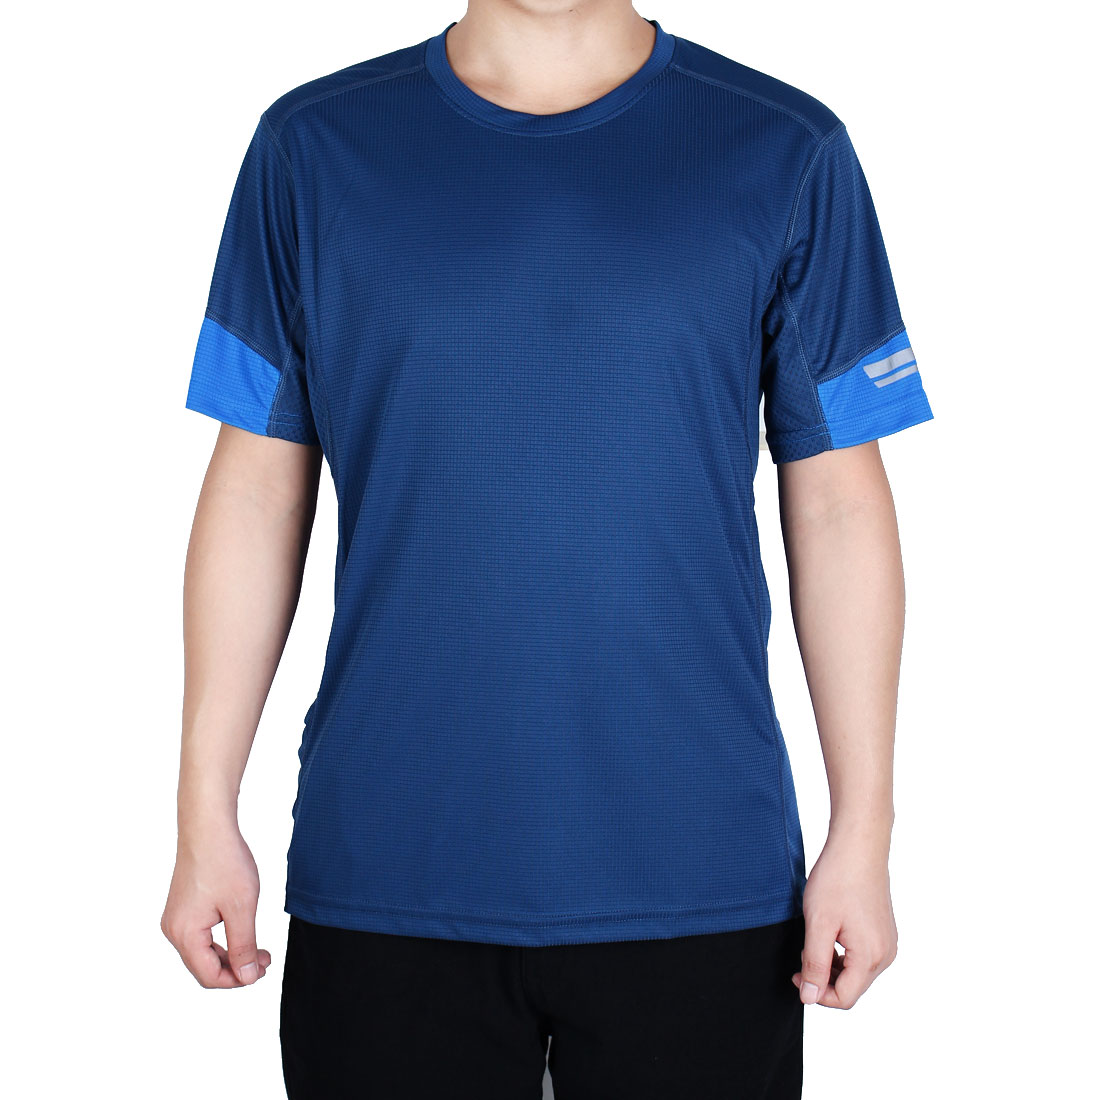 Men Polyester Short Sleeve Clothes Casual Wear Tee Sports T-shirt Navy Blue L